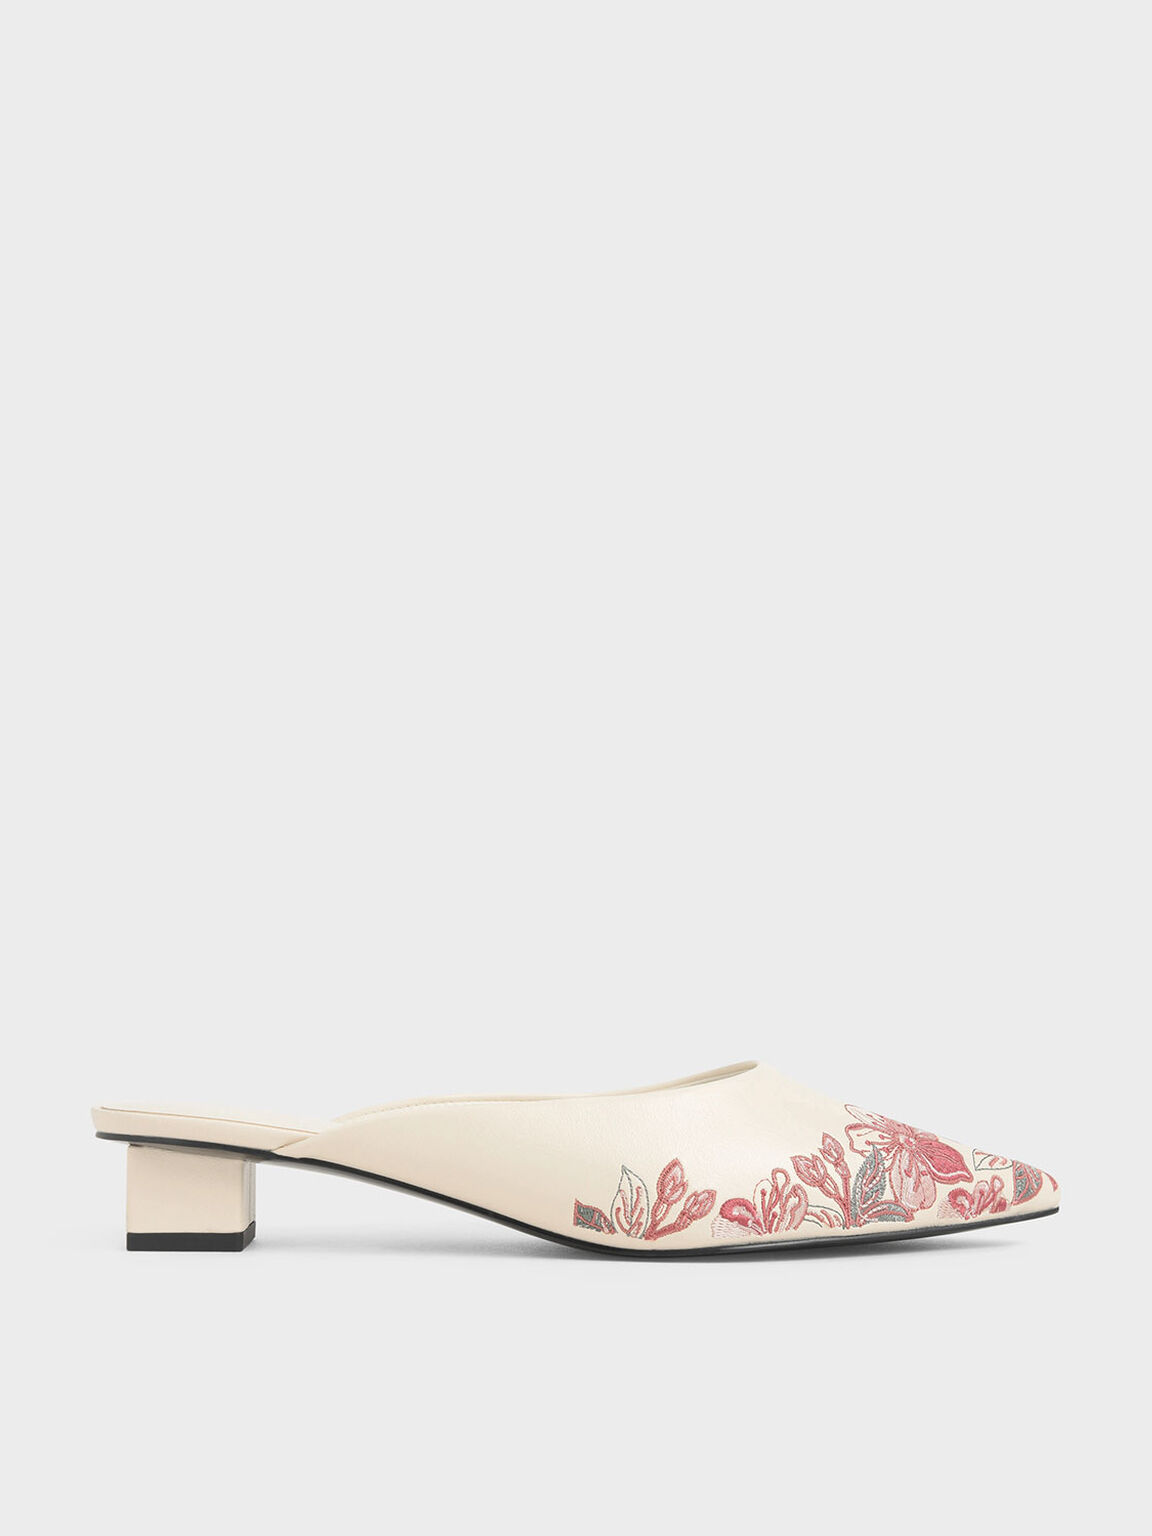 Embroidered Floral Mules, Cream, hi-res